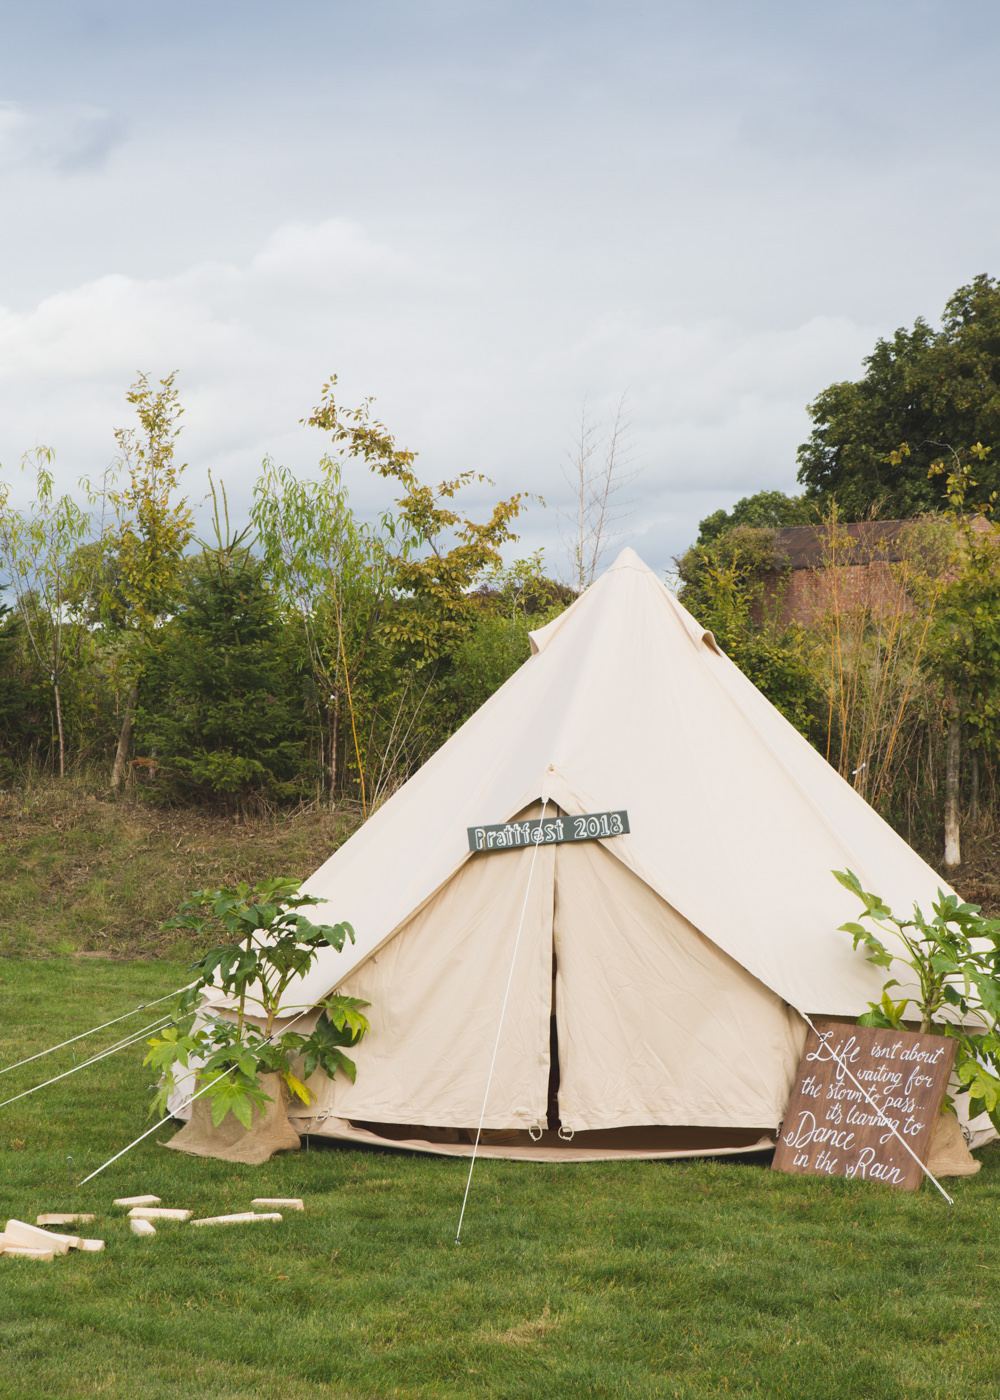 Glamping Tipi Tent Bell Airbnb Wedding Pickavance Weddings